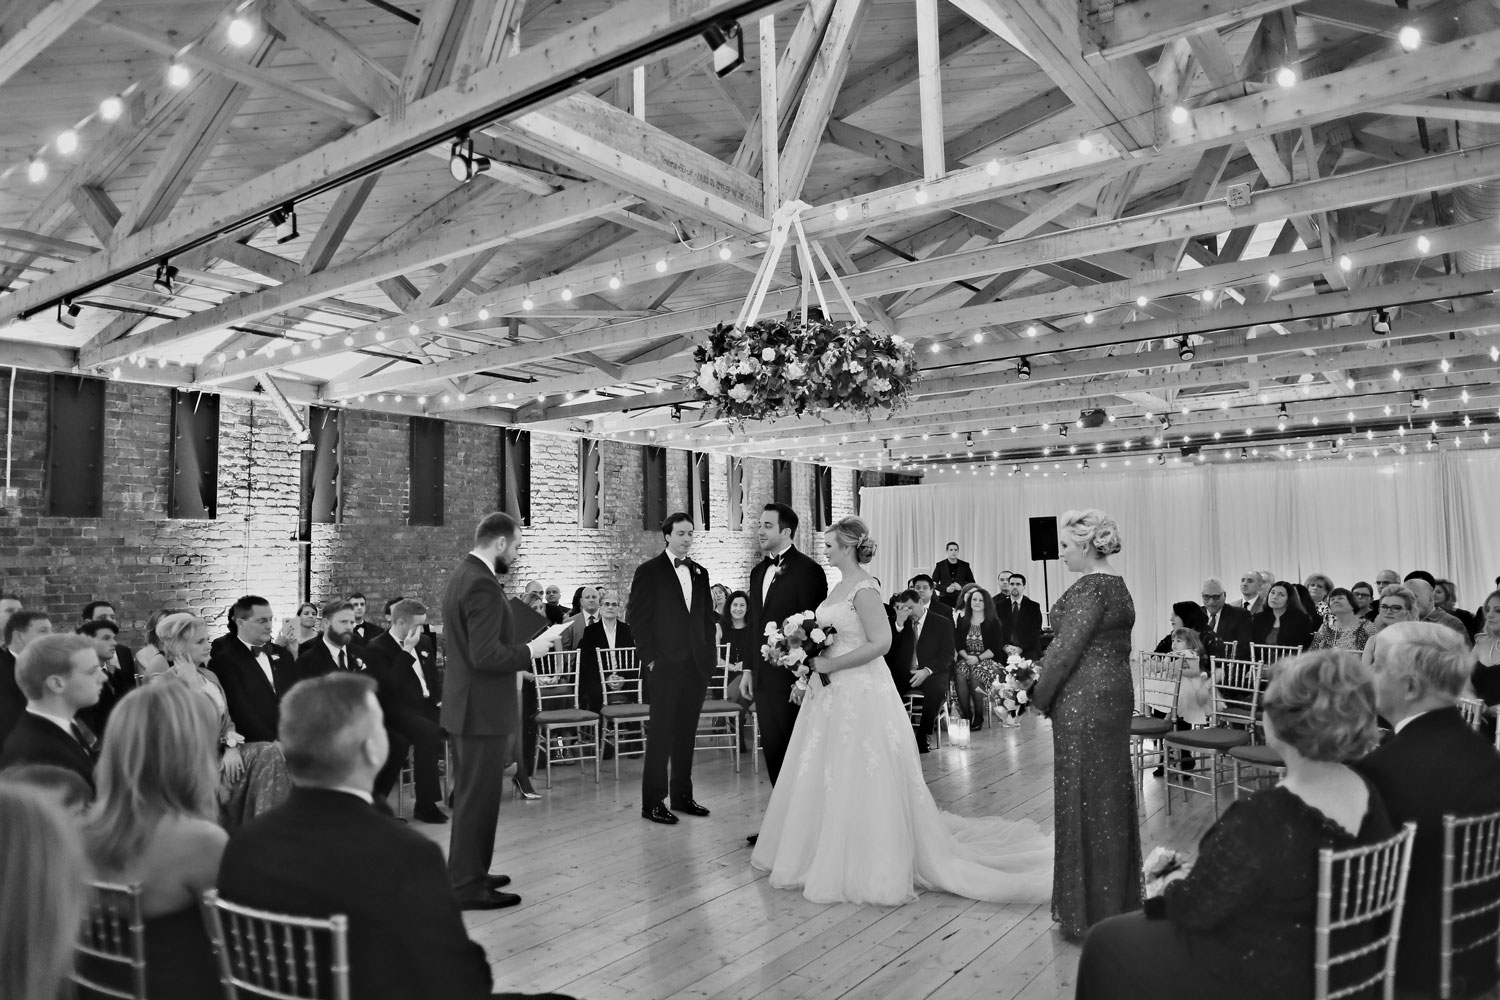 Black and white photo of wedding ceremony at brewery